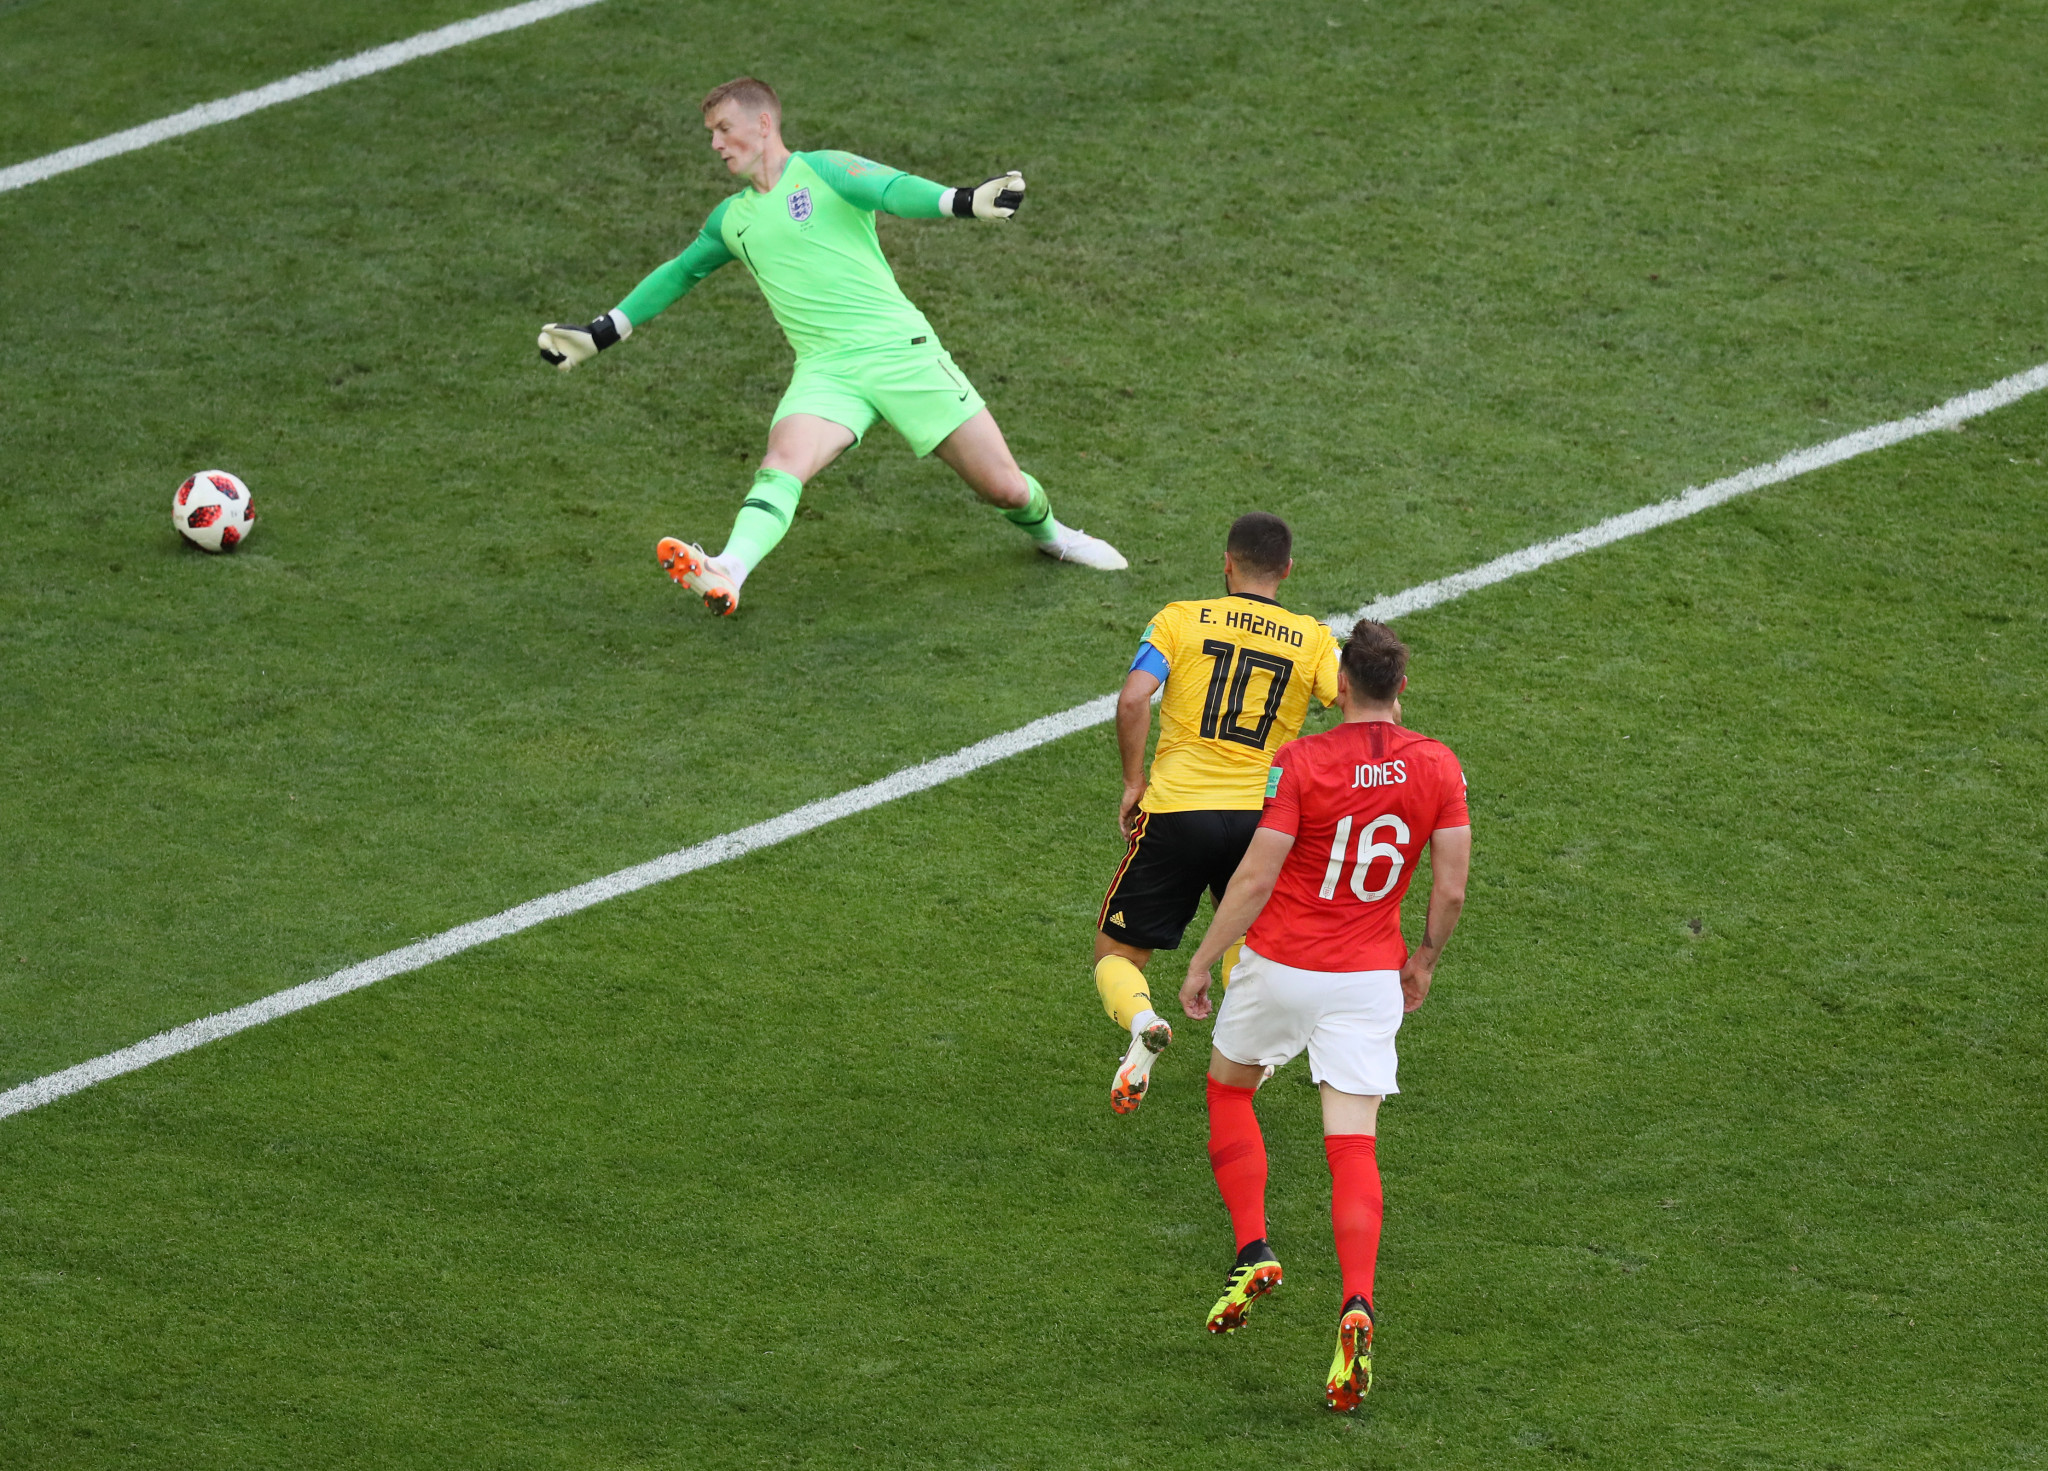 Eden Hazard scored Belgium's second goal to seal their best finish at a FIFA World Cup ©Getty Images